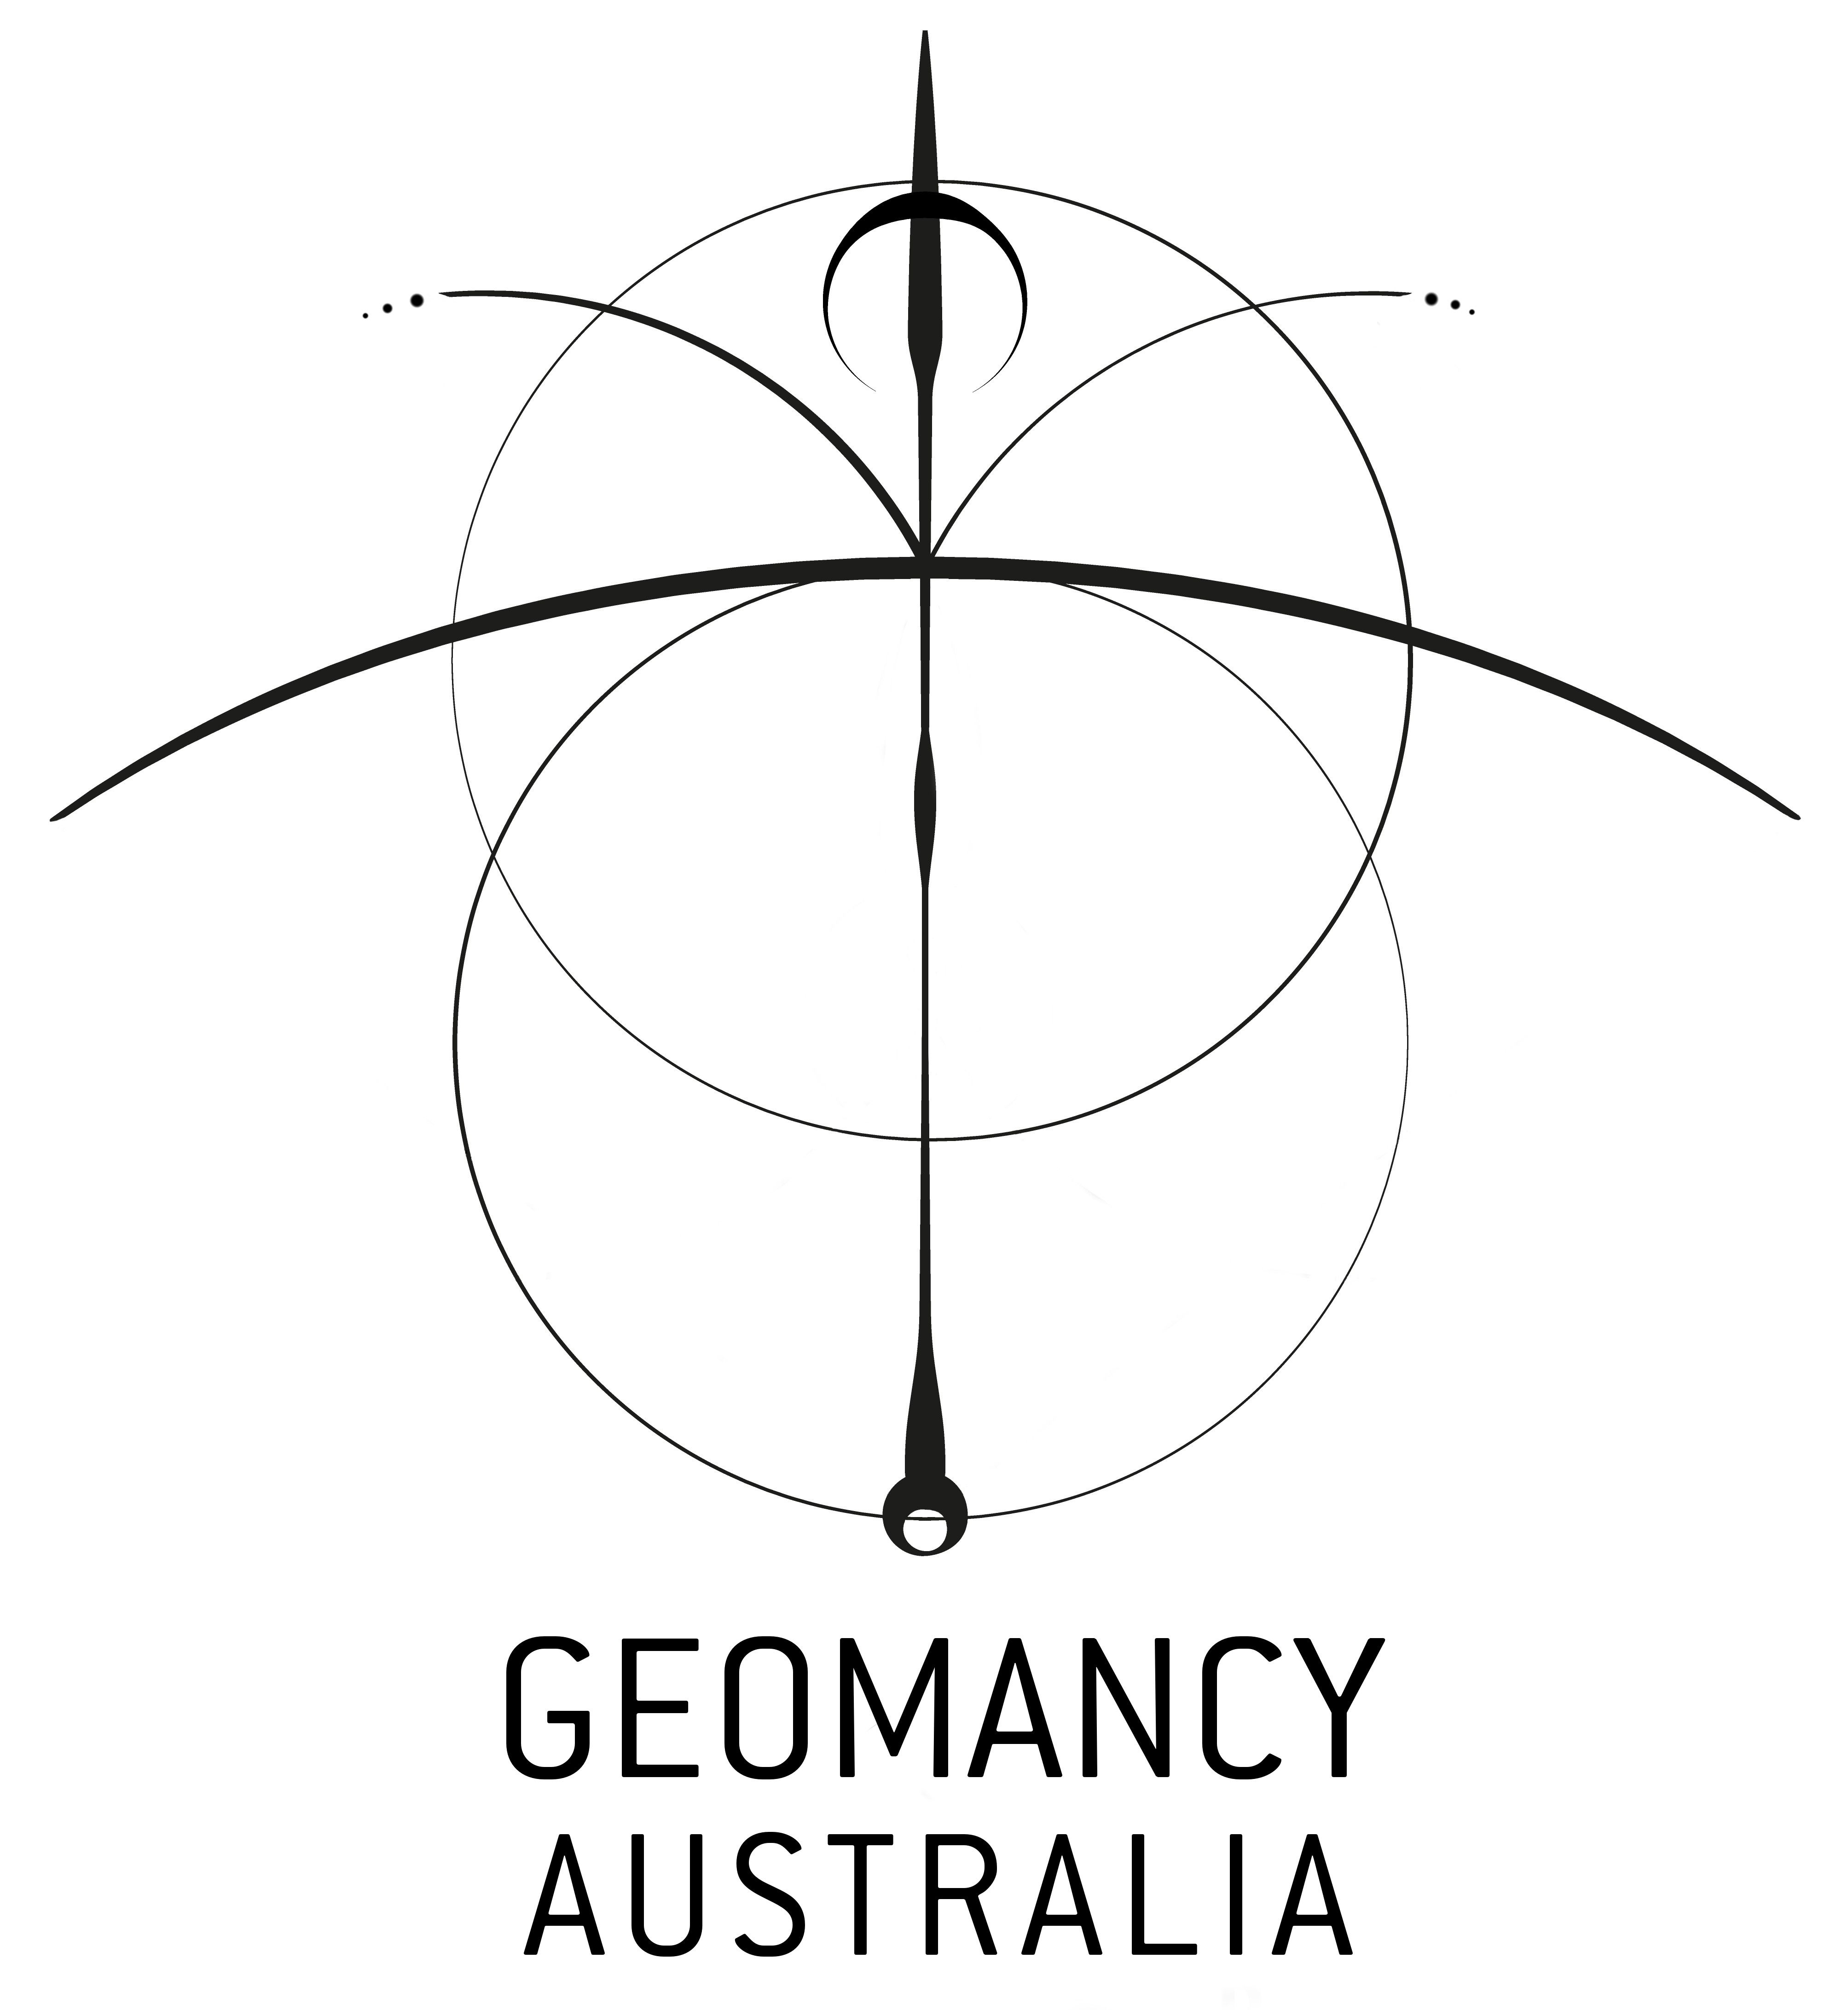 Training and events - Geomancy Australia – Heal the Earth